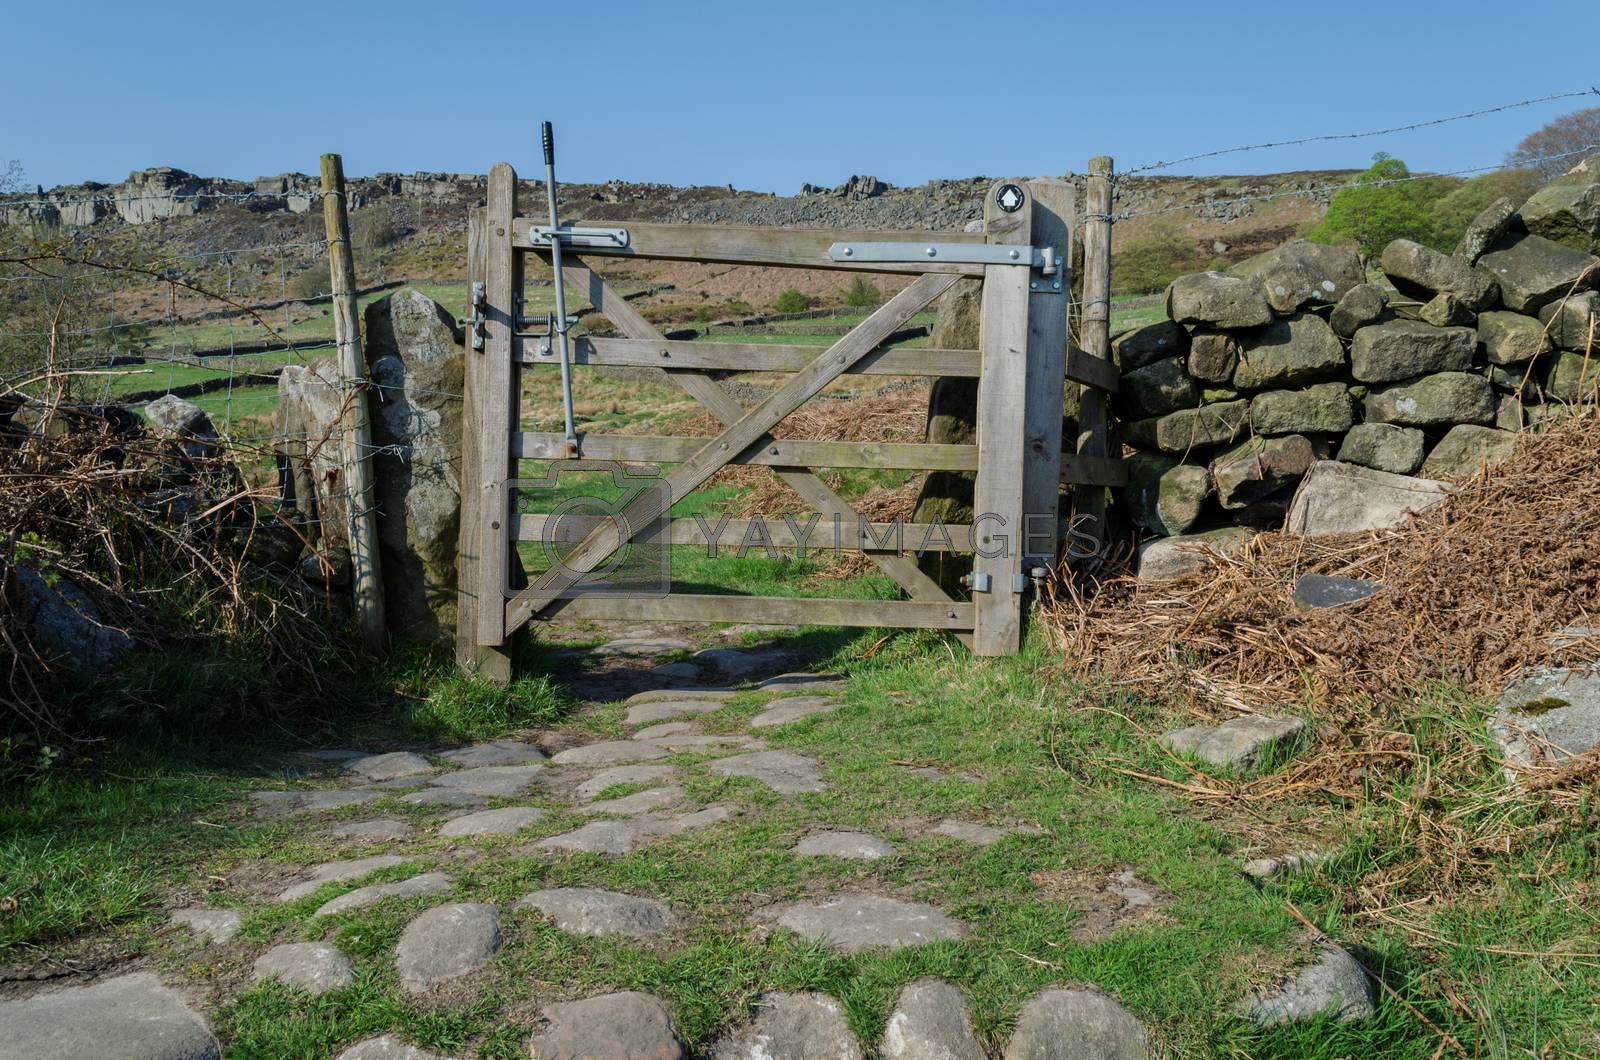 A small gate in a dry stone wall which allows ramblers to pass through.